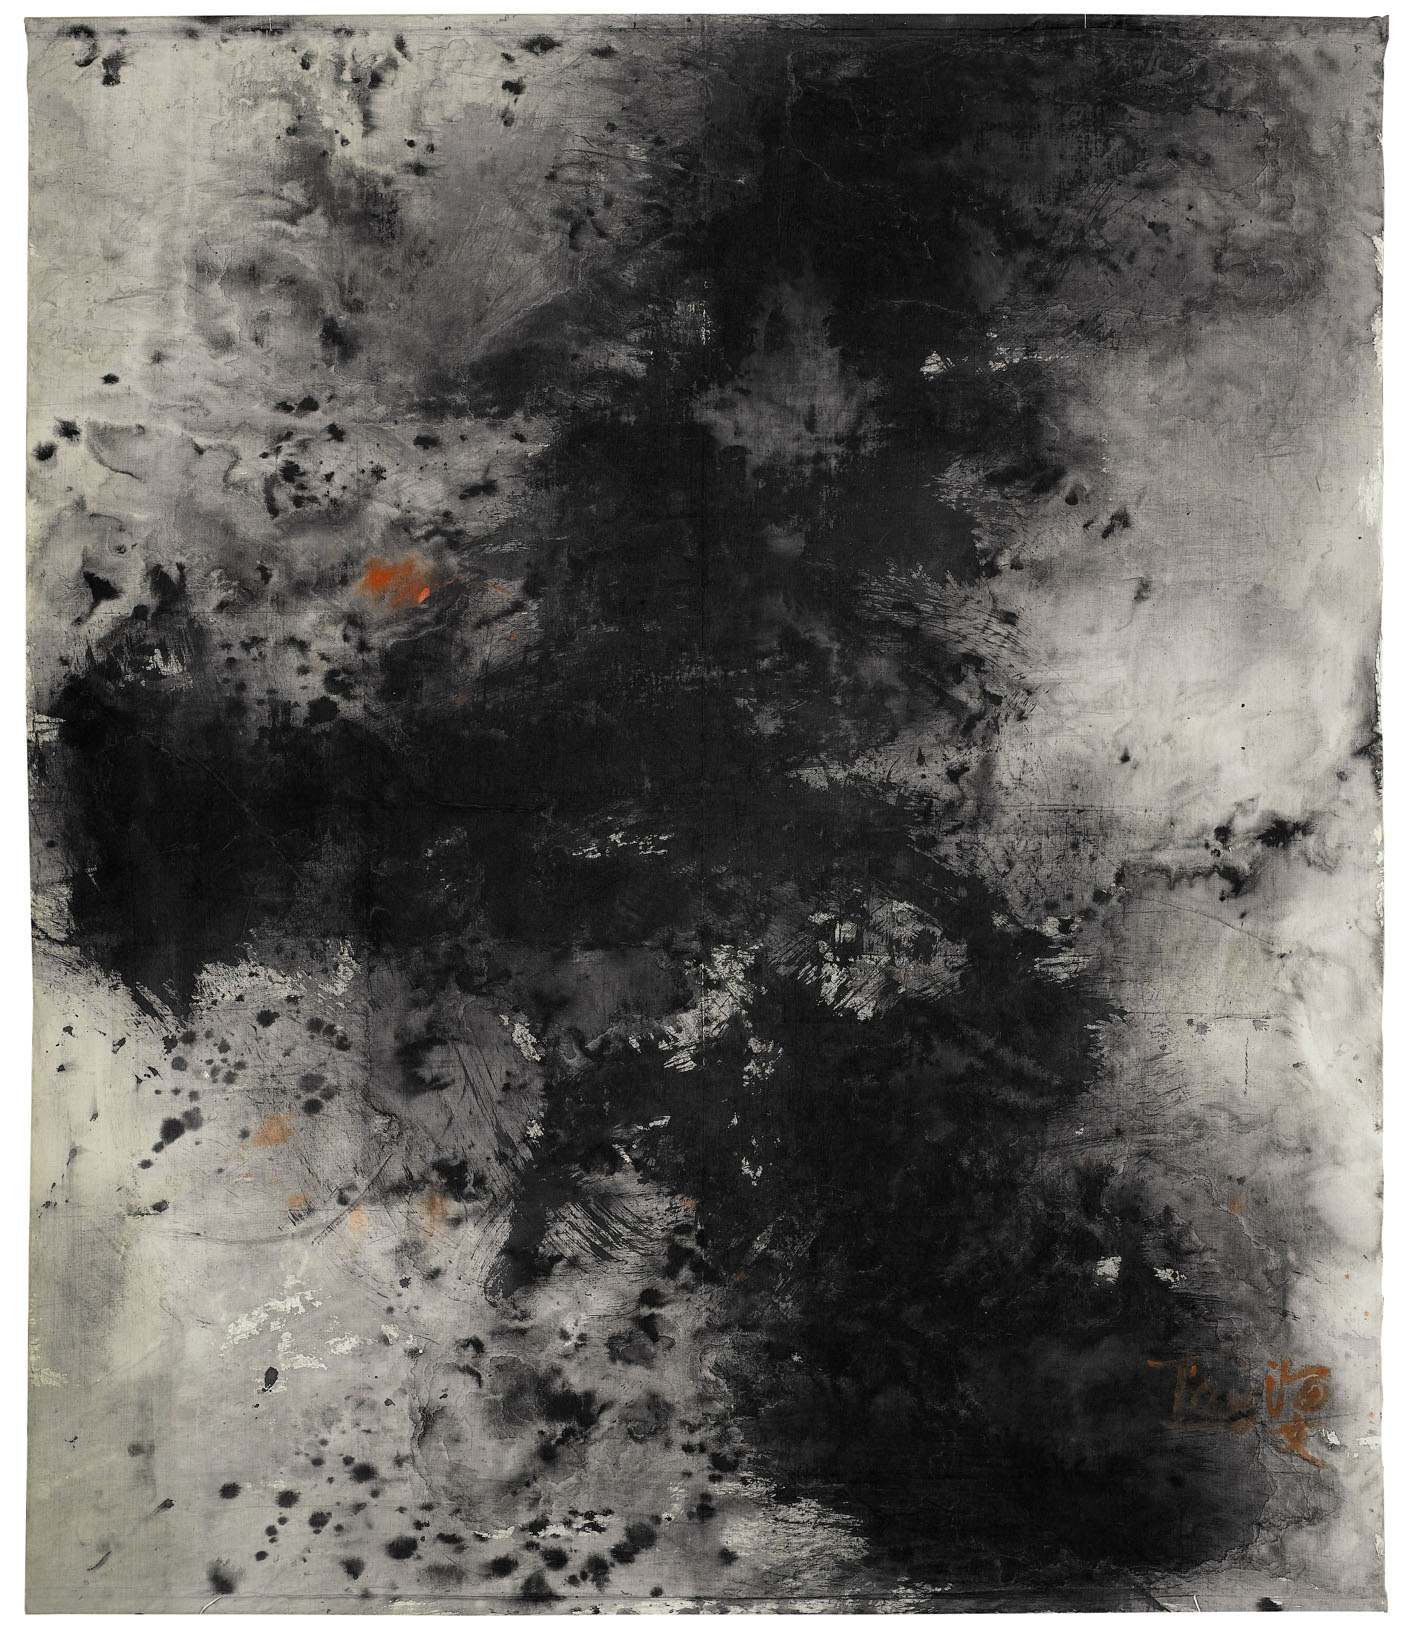 Sans titre, 1964/1966, encre sur toile de coton, 209,5x175,8 cm. Collection du M+ Museum, Hong Kong, Chine.